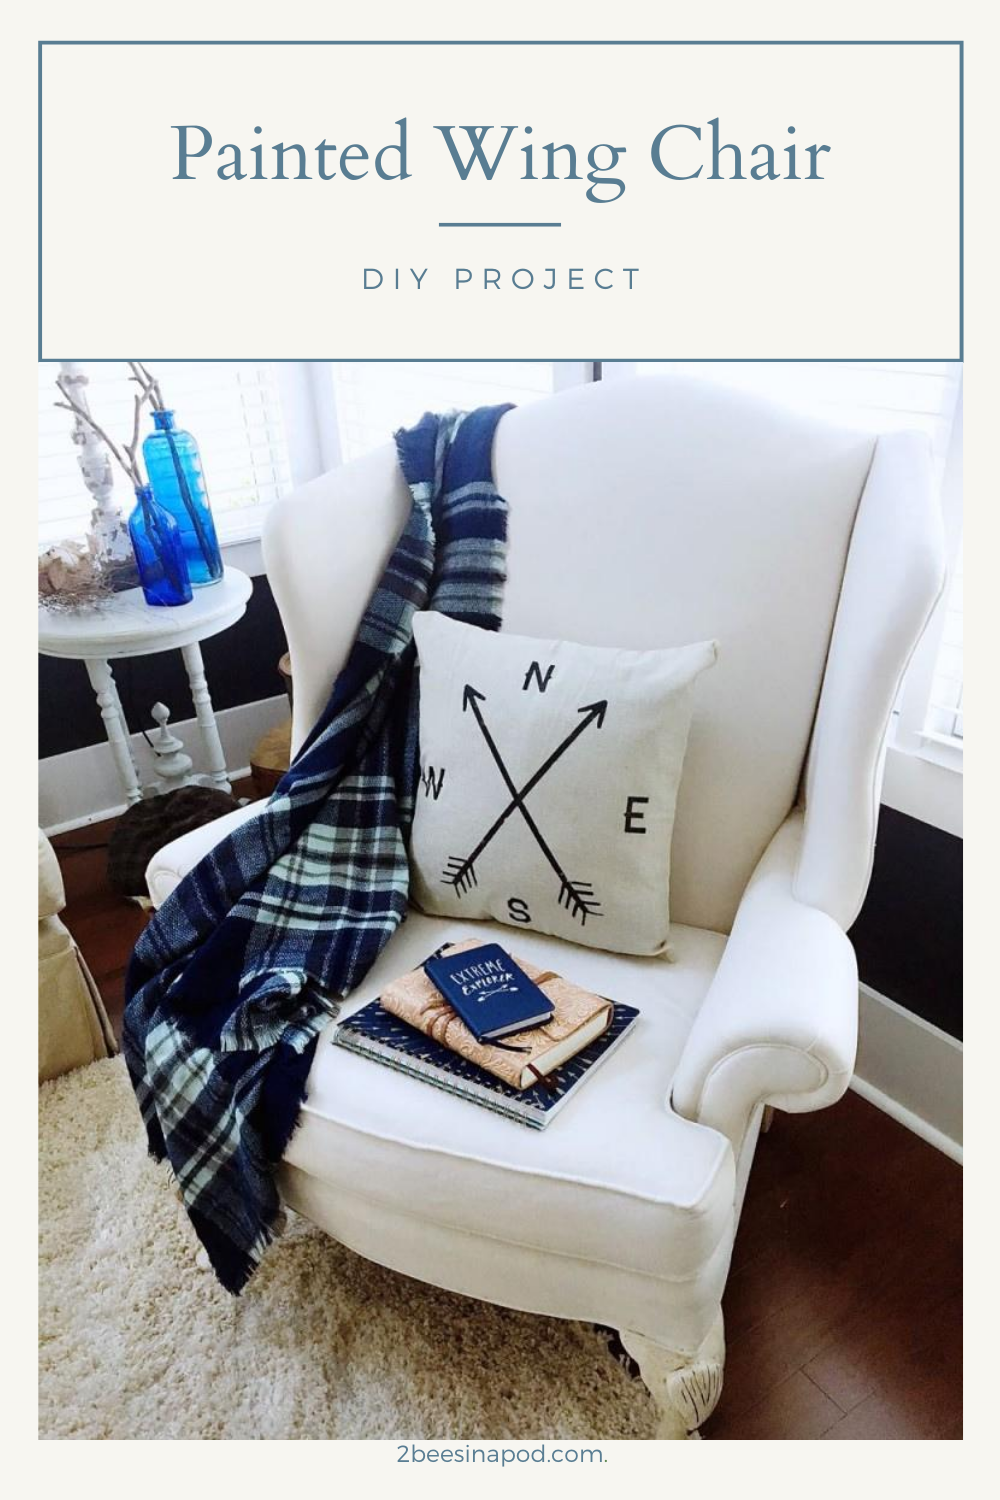 Painted Wing Chair - DIY Project